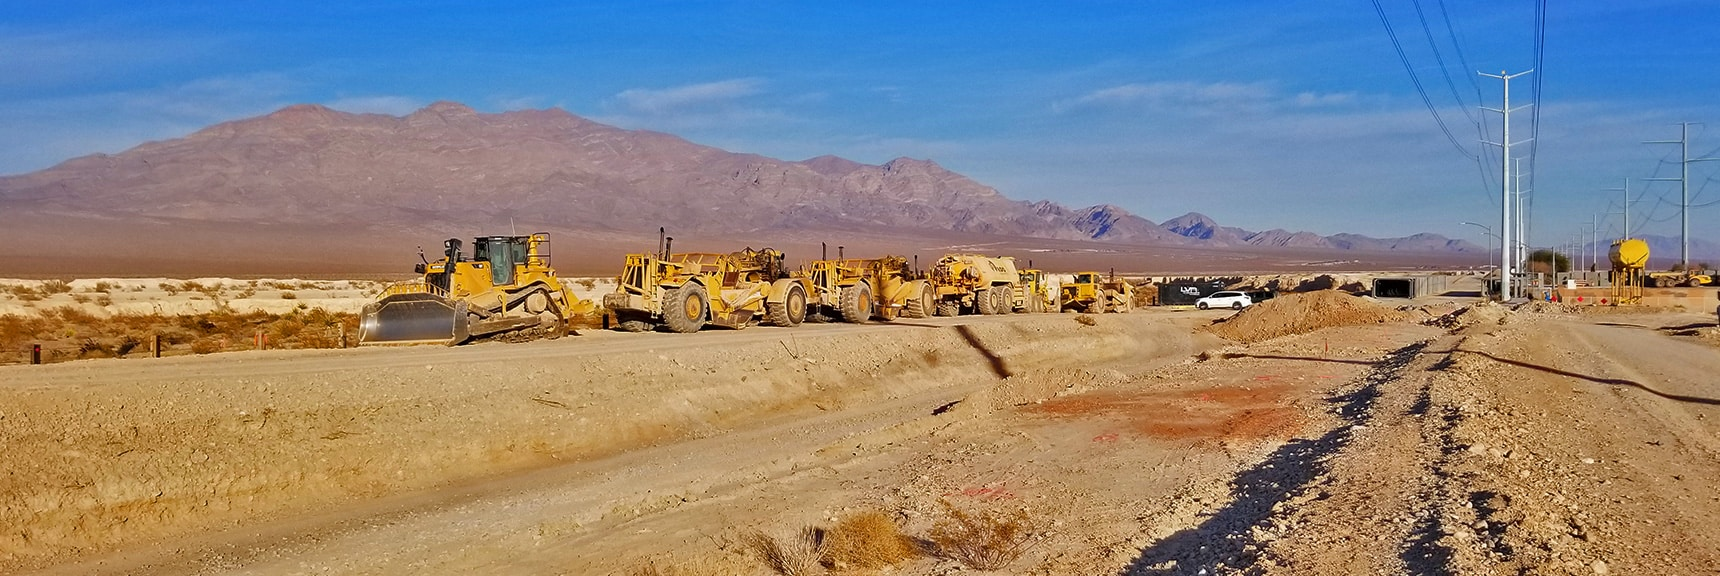 Construction on Moccasin At the Tule Springs Fossil Beds Area. Gass Peak in Background | Snapshot of Las Vegas Northern Growth Edge on January 3, 2021